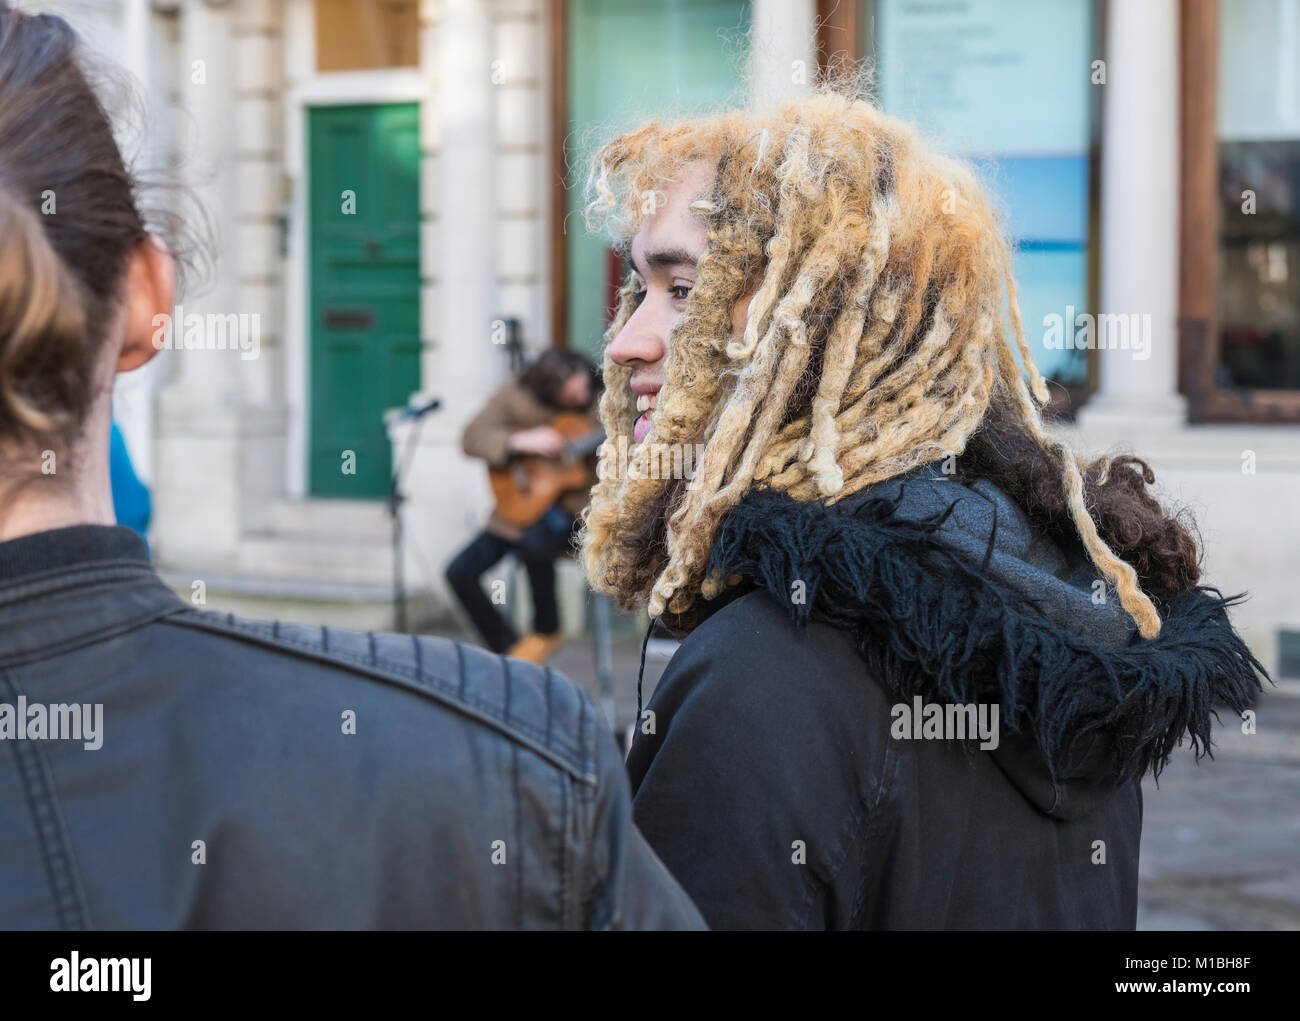 Young man with dreadlocks or braided hair. - Stock Image